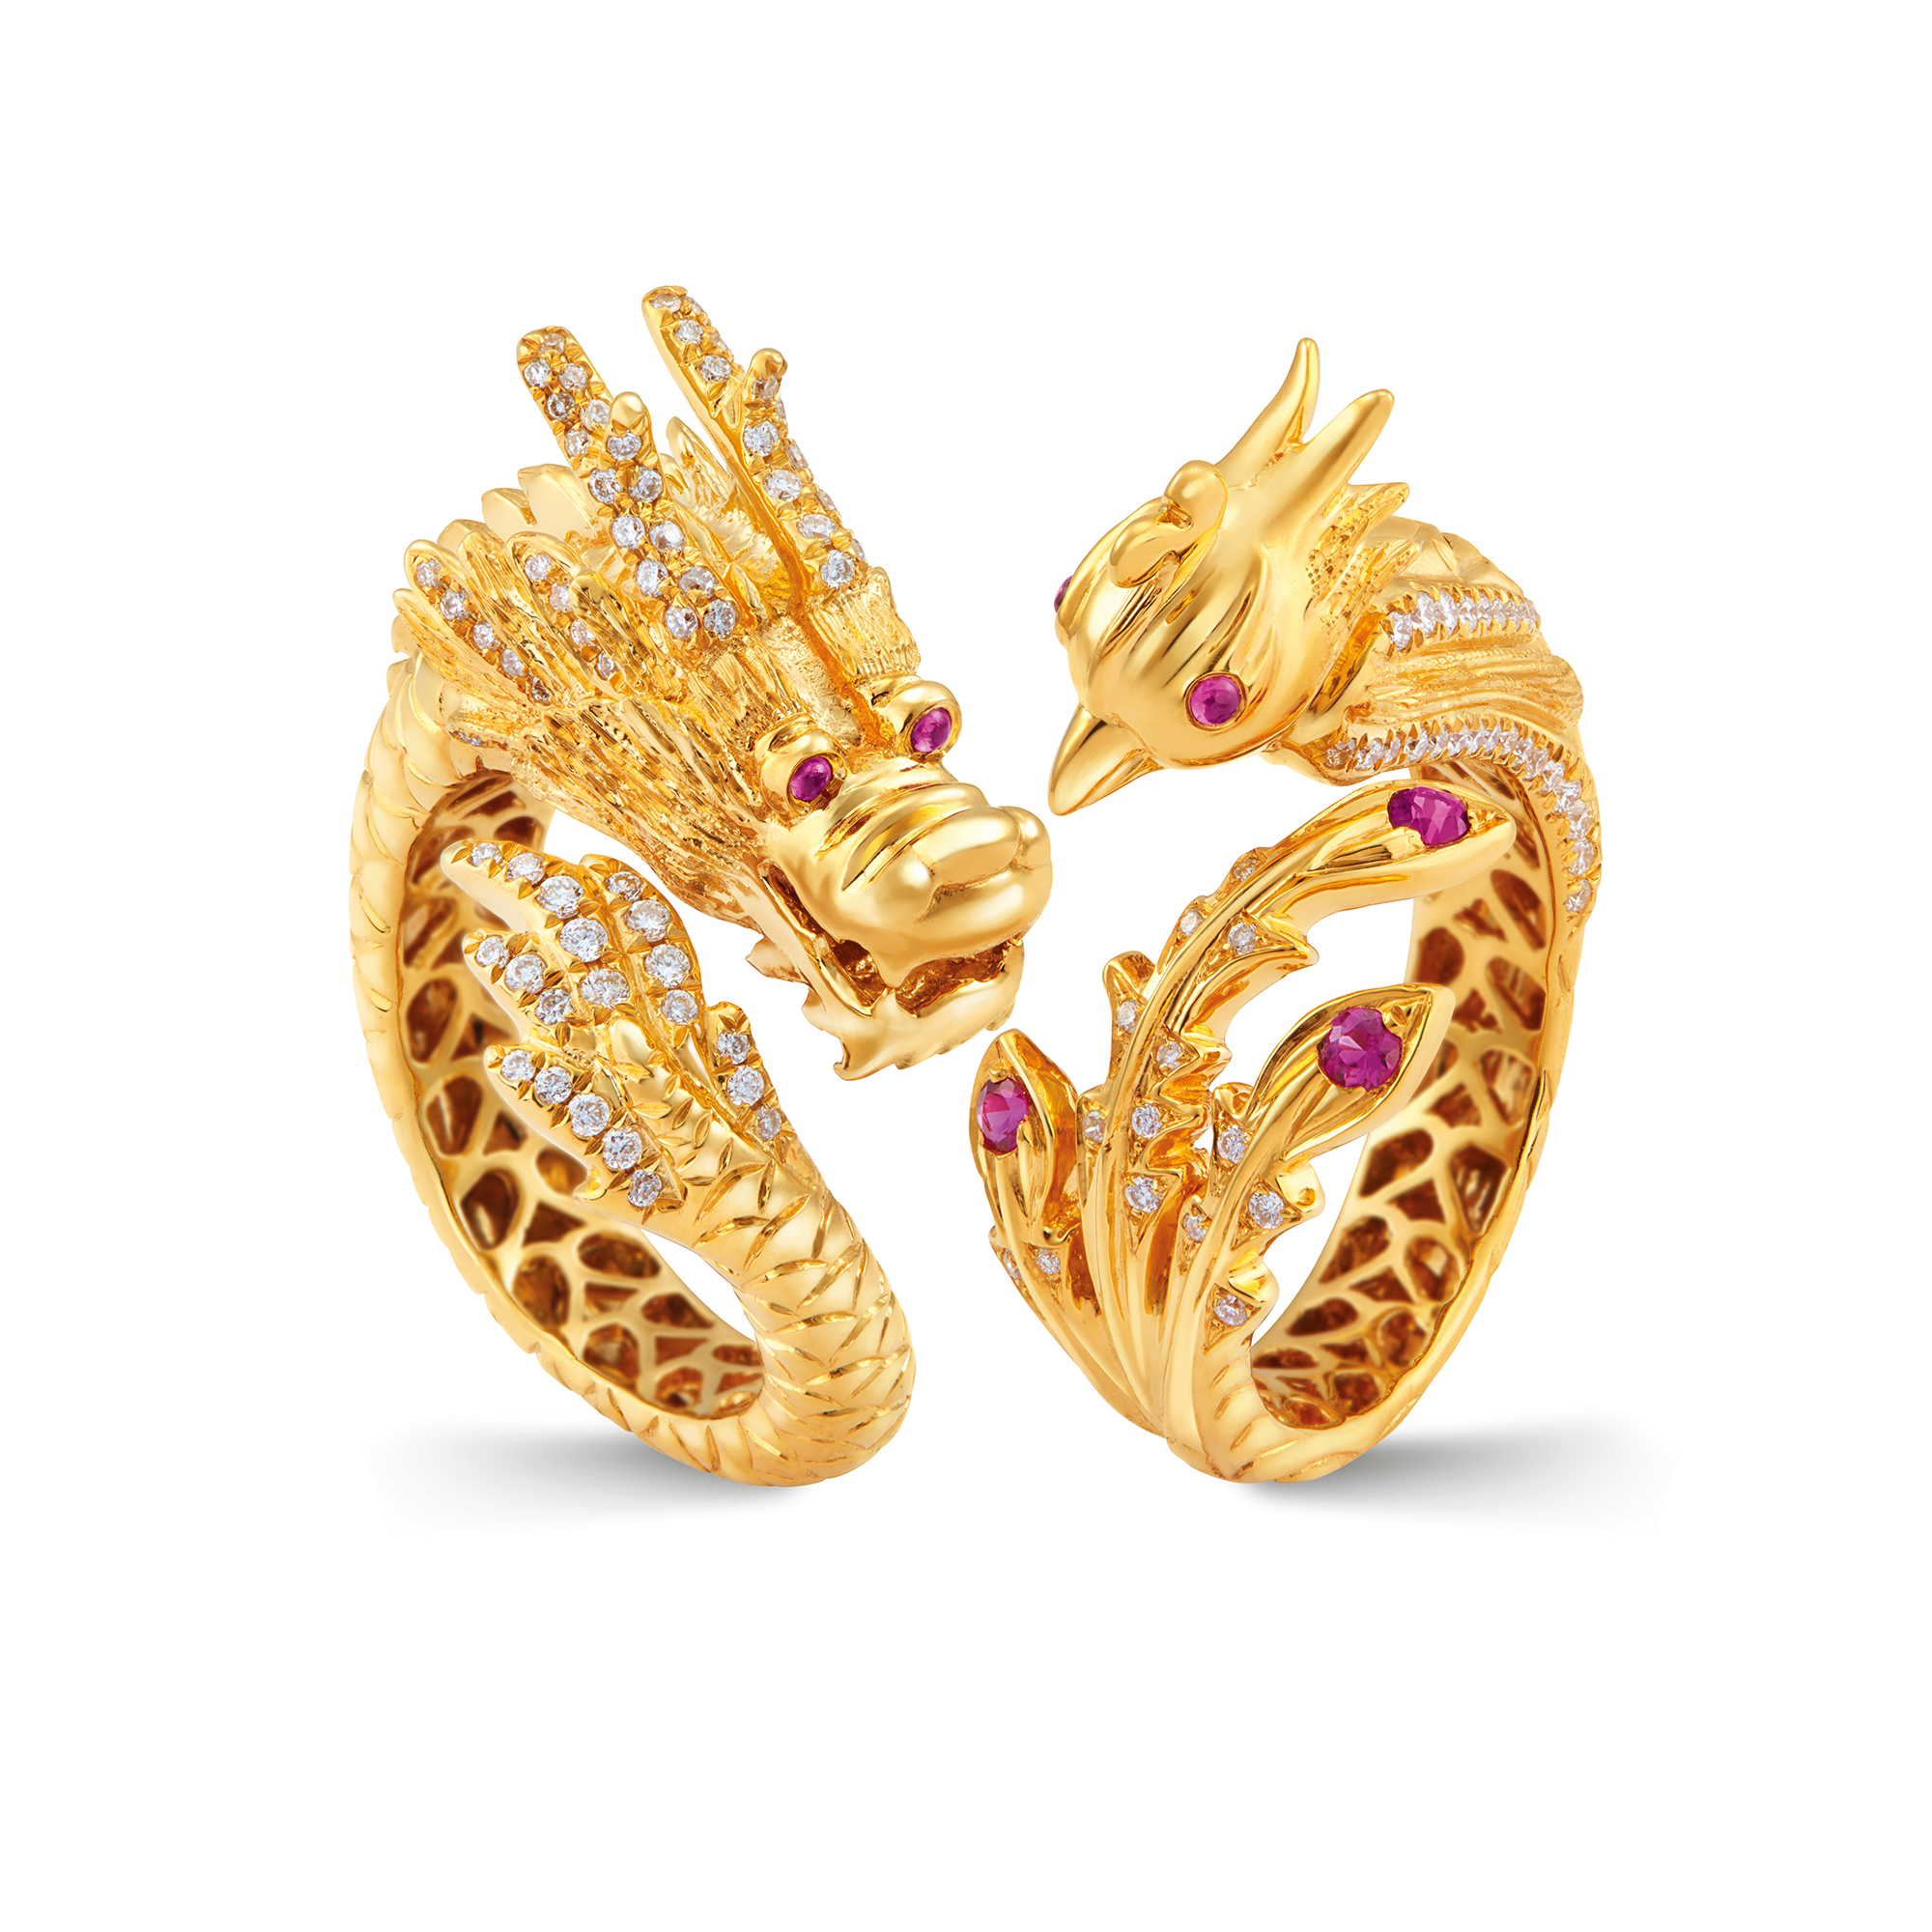 rauw rings collections ring jewelry img phoenix